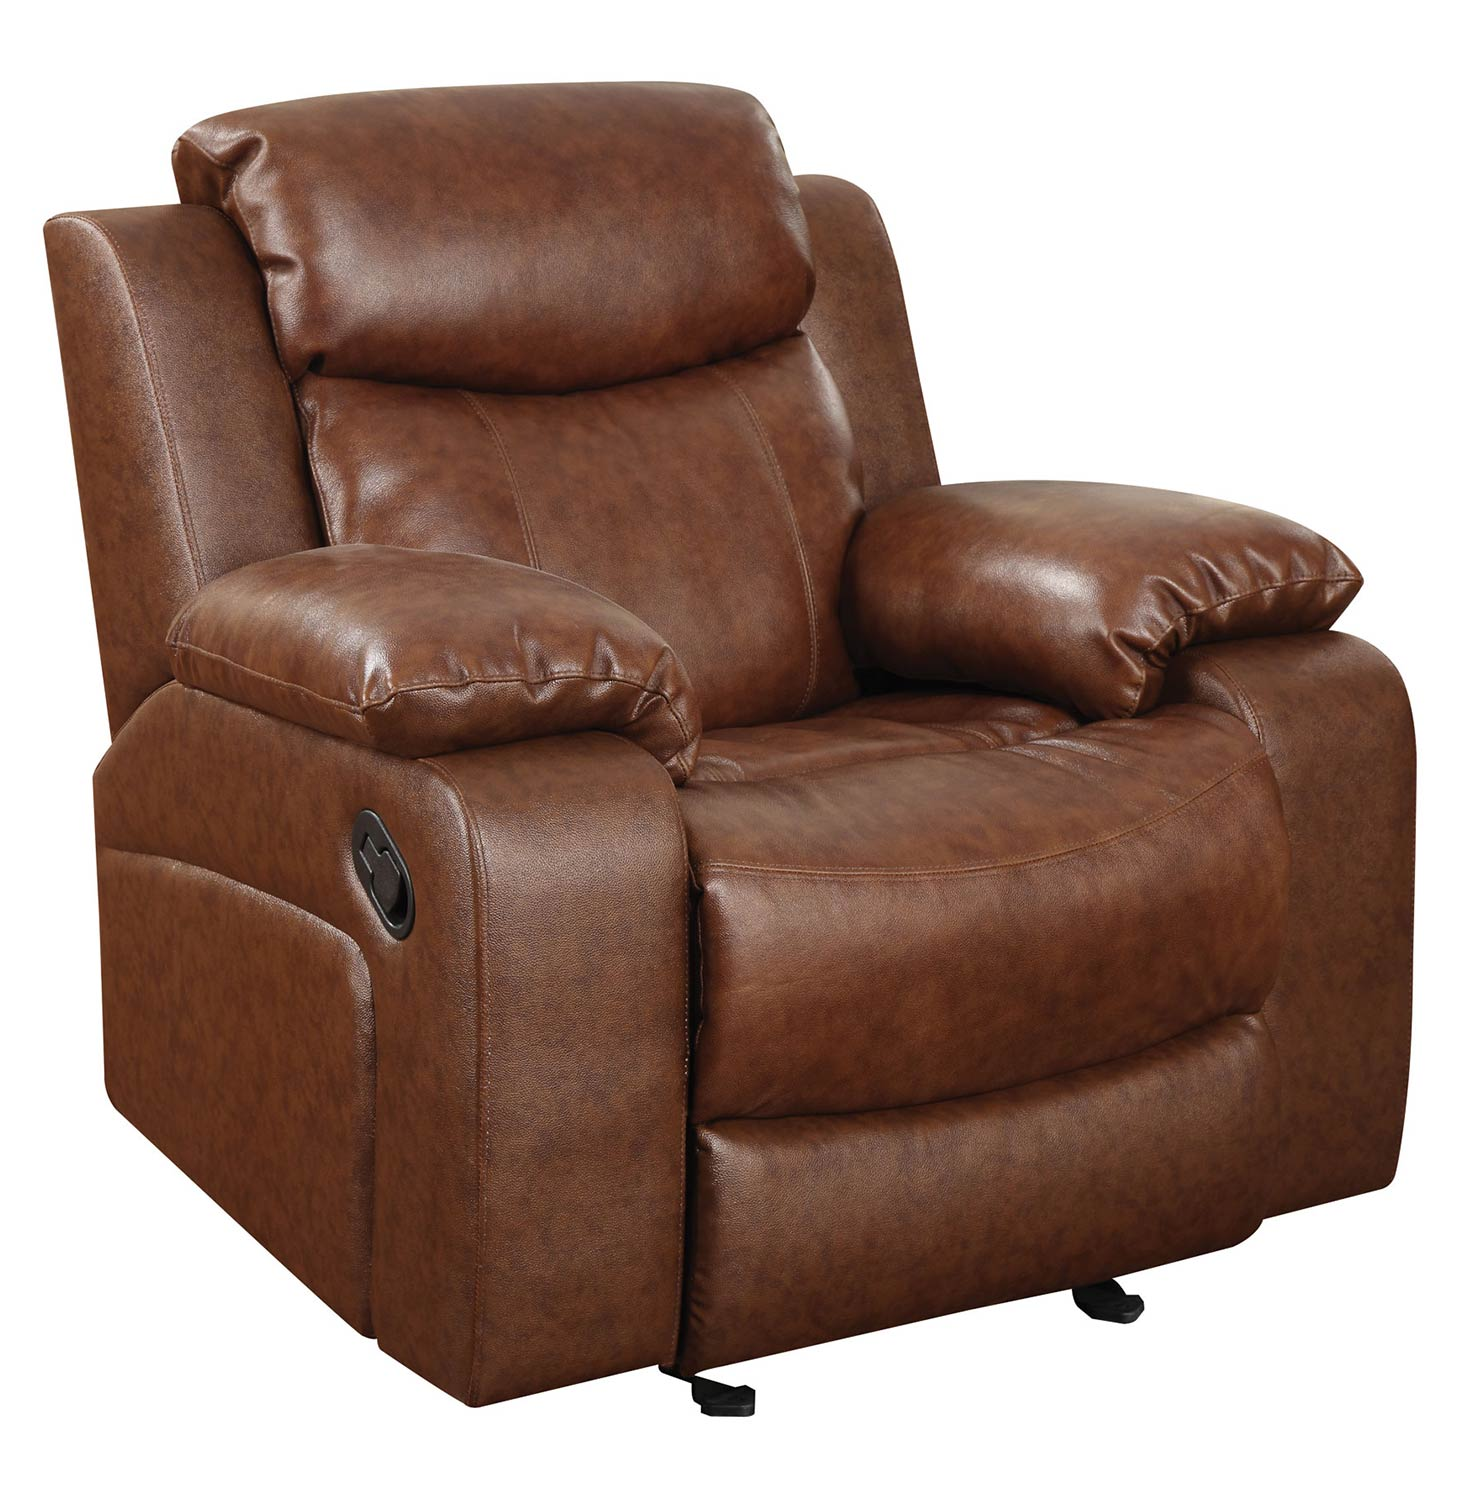 Coaster Ellsworth Motion Rocker Recliner - Brown 601211R